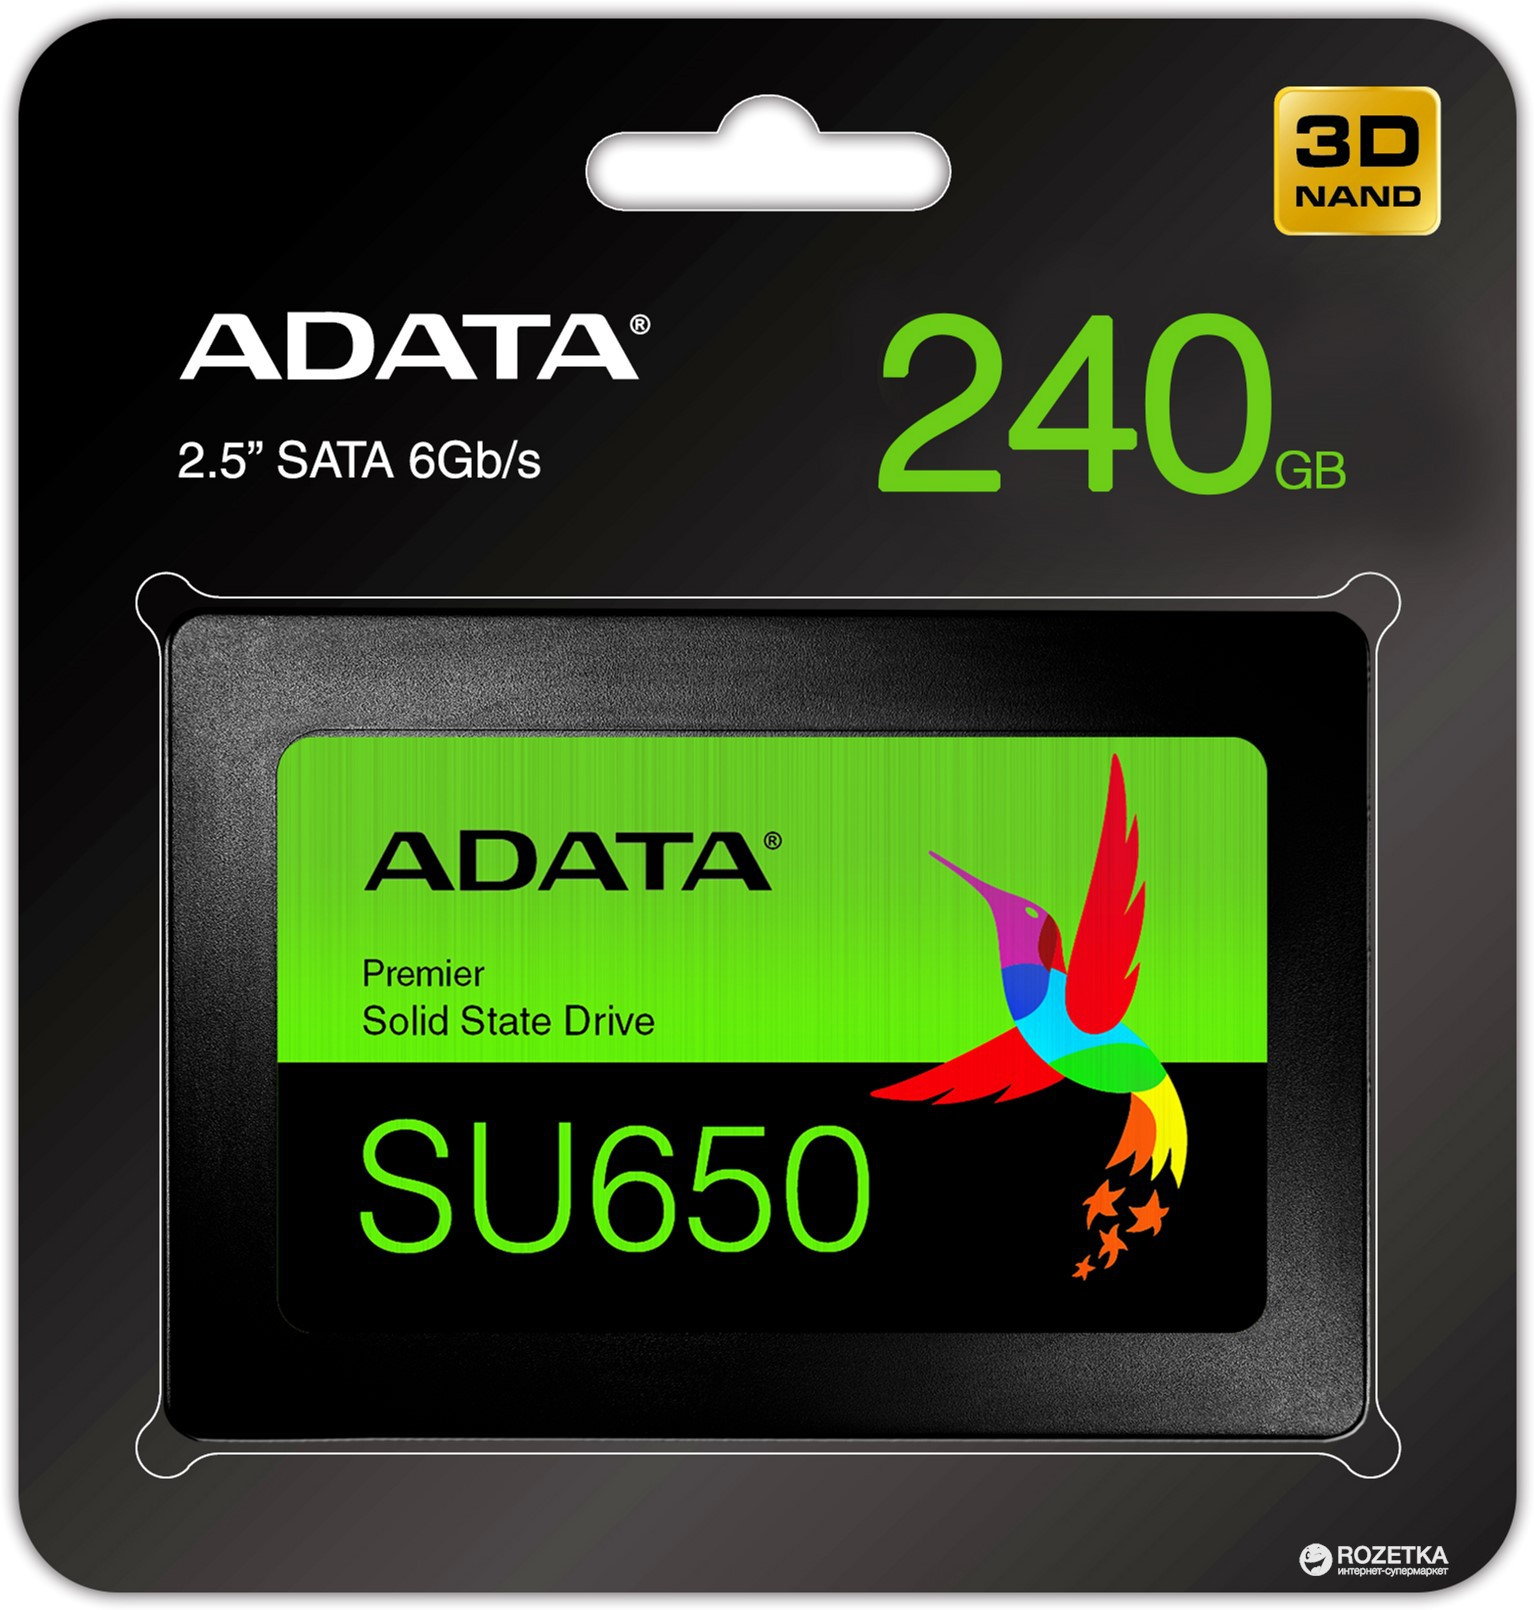 Disco Solido Adata de 240GB